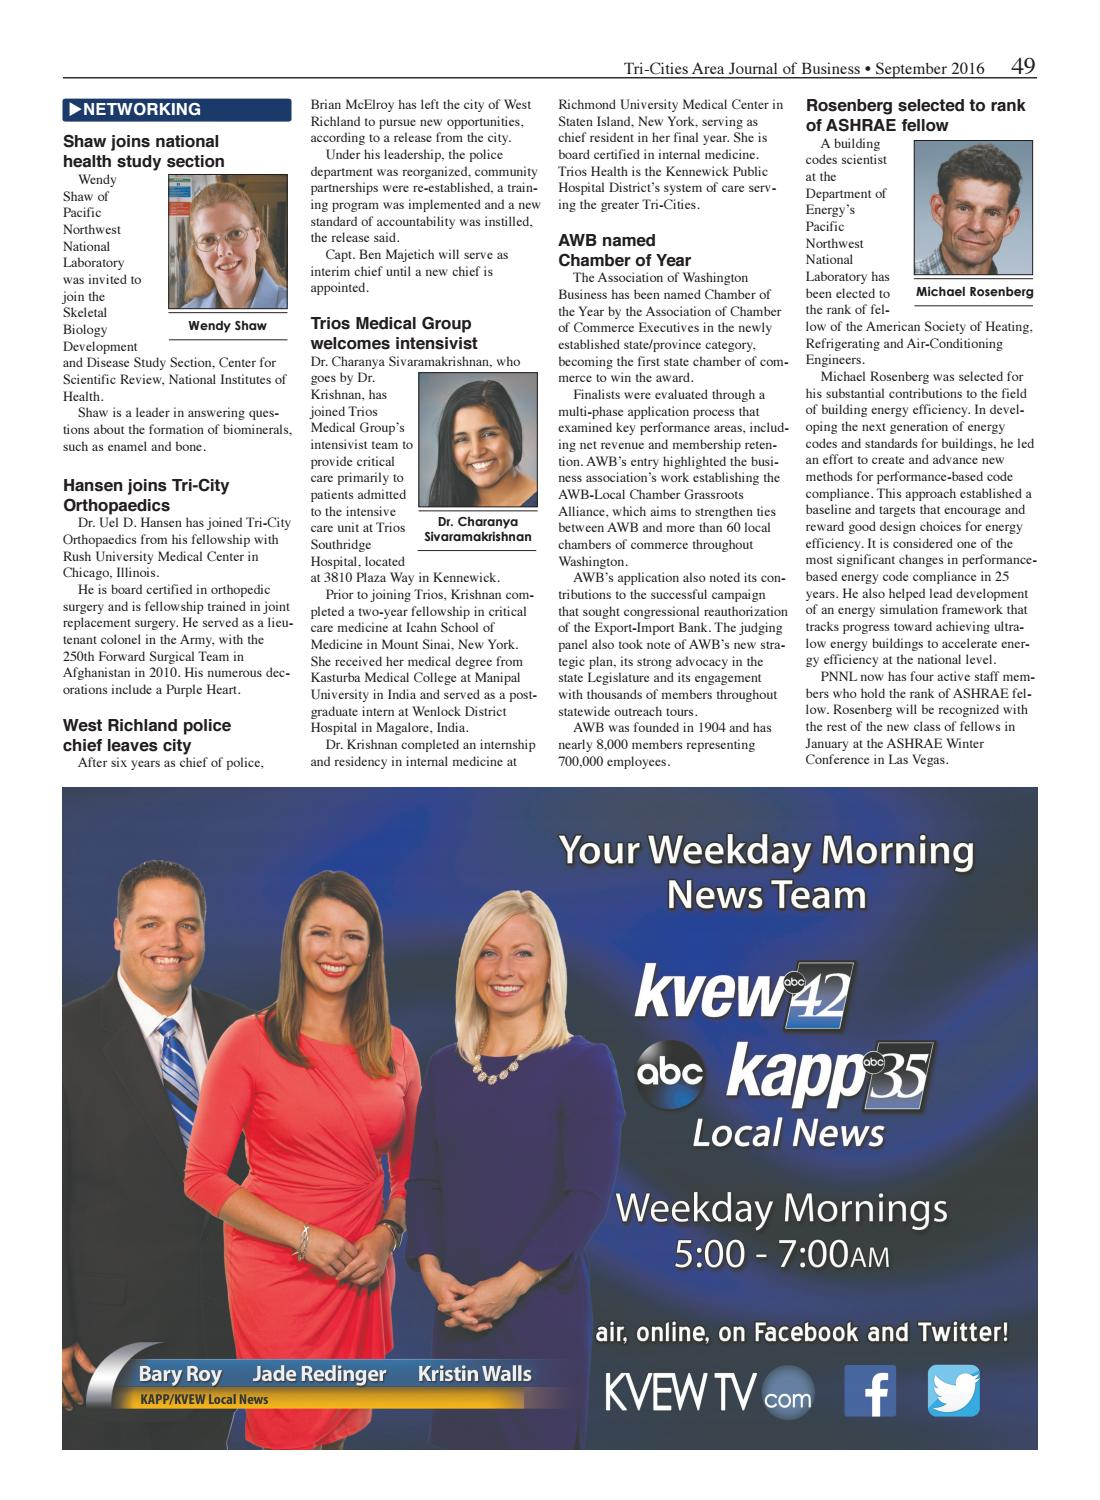 Tri-Cities Area Journal of Business - September 2016 by Tri